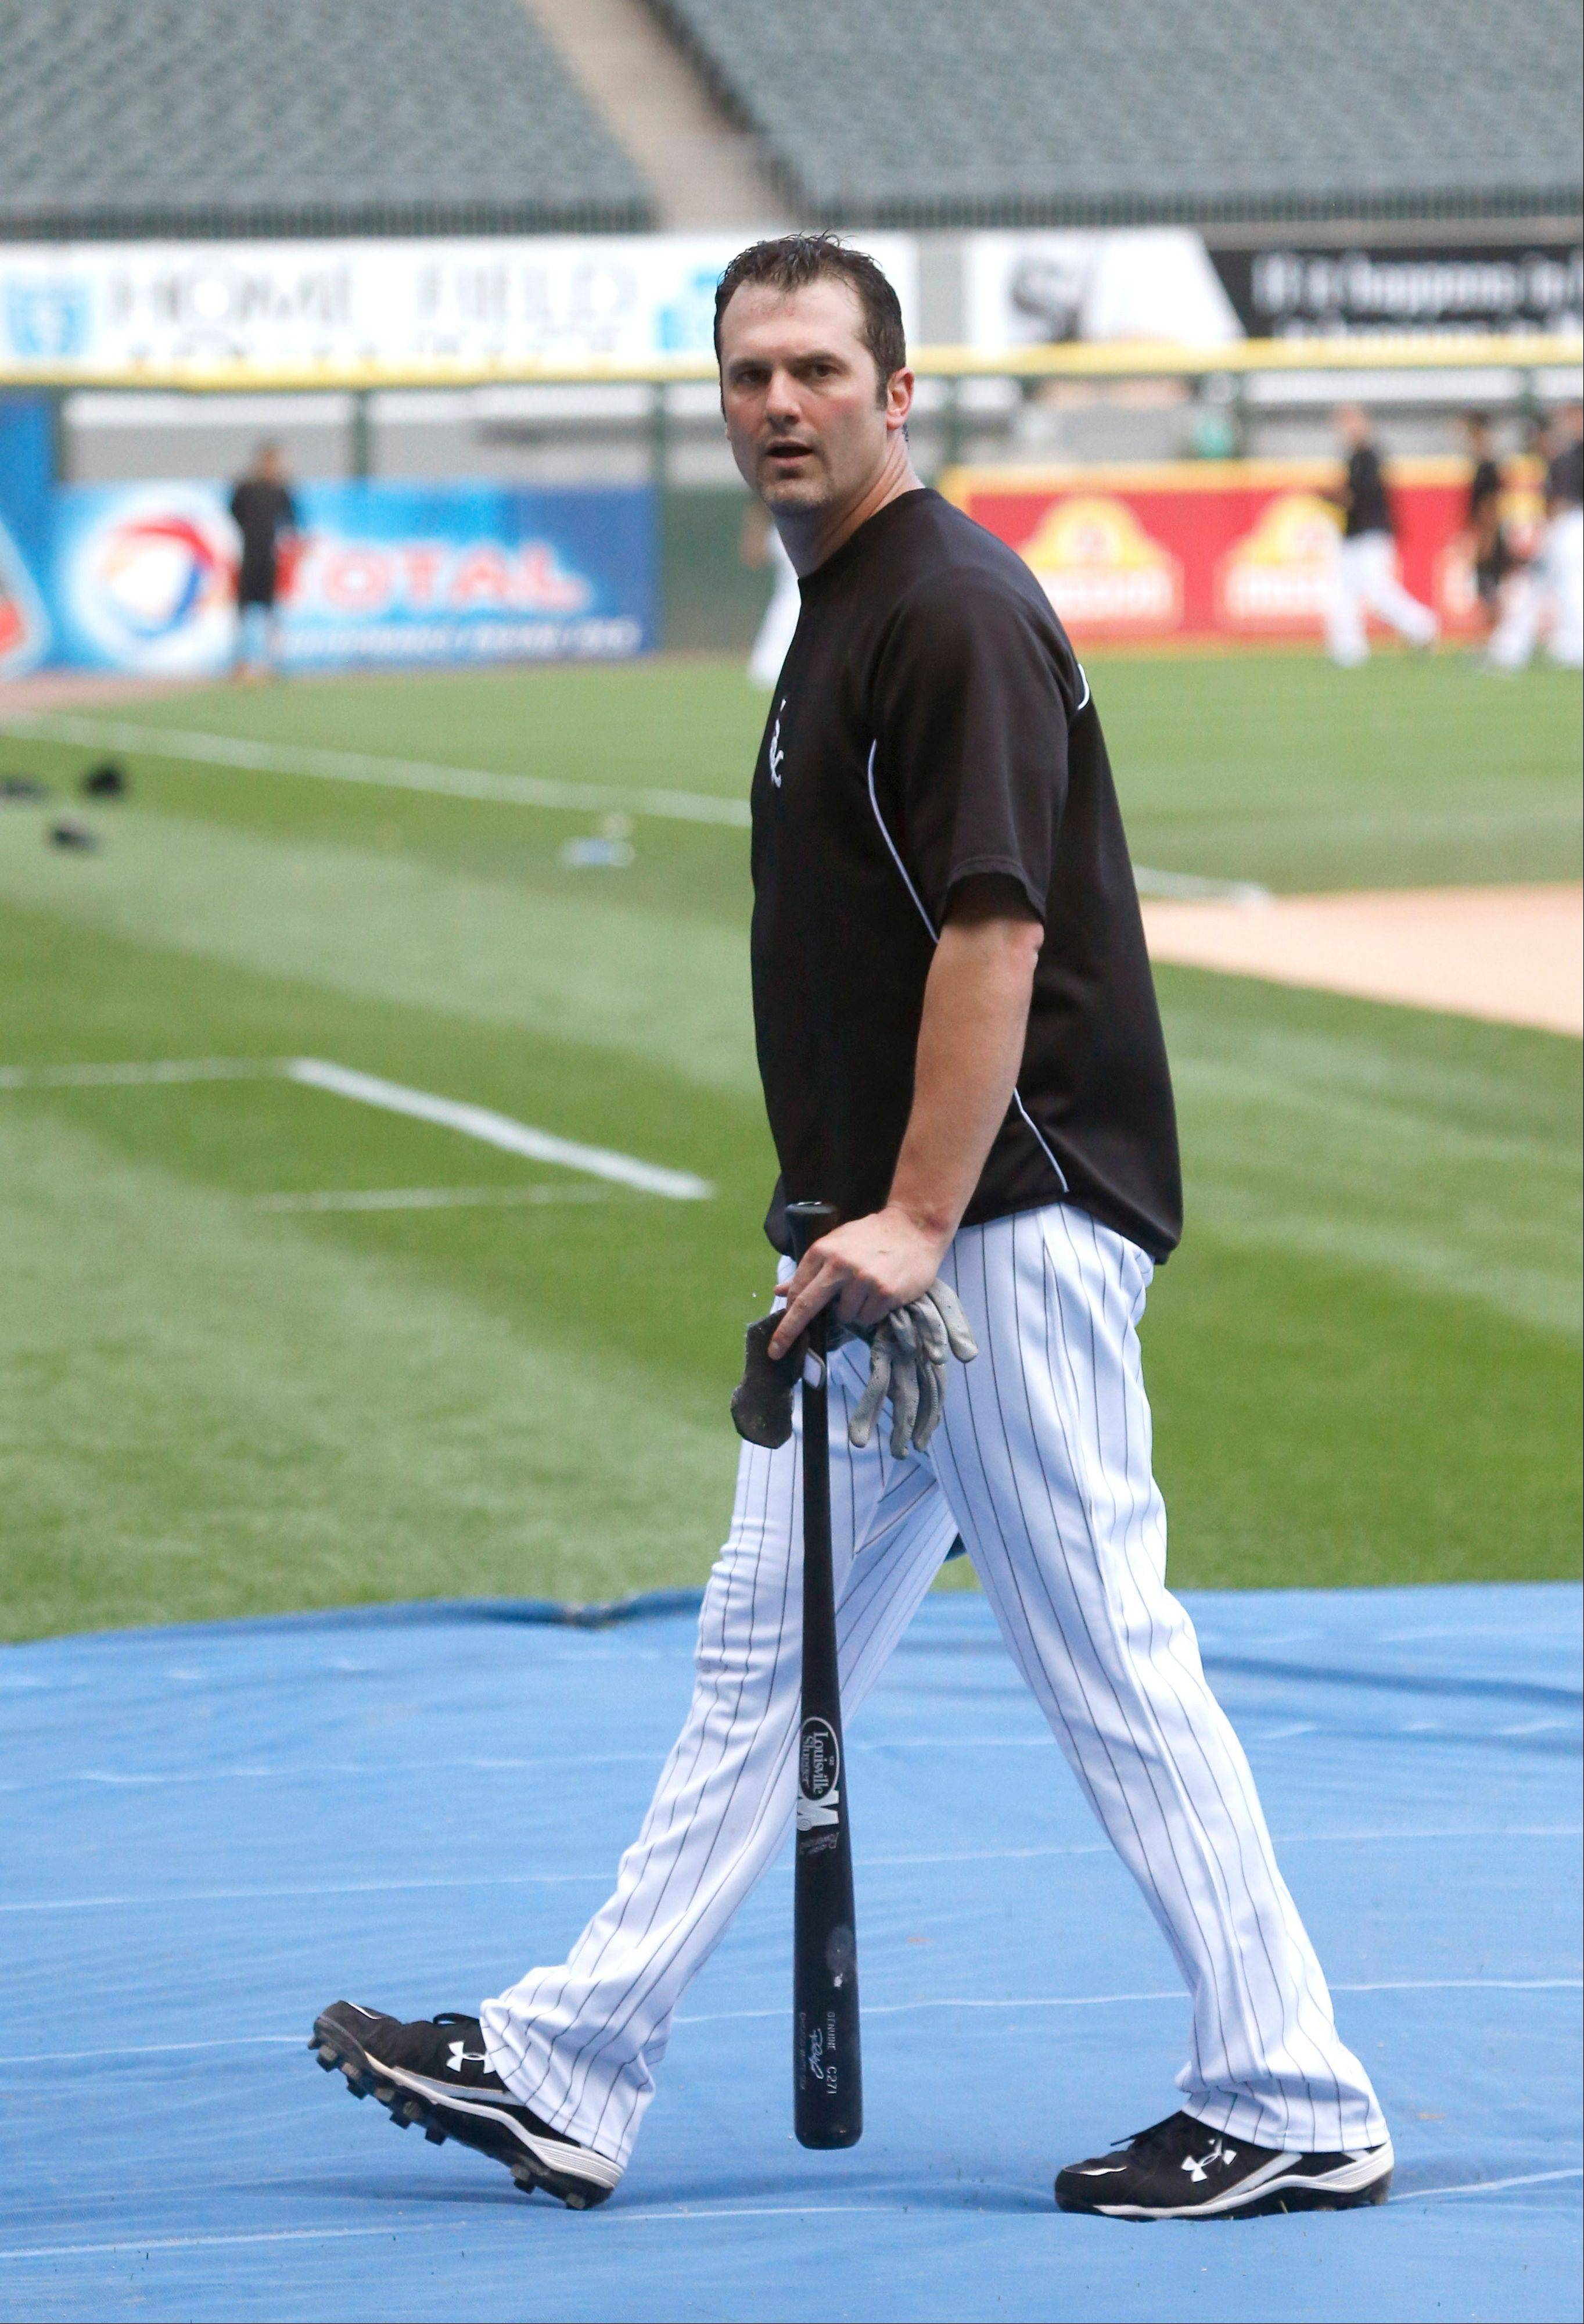 White Sox first baseman/DH Paul Konerko heads to the dugout during batting practice before Monday night�s game against the Tigers.